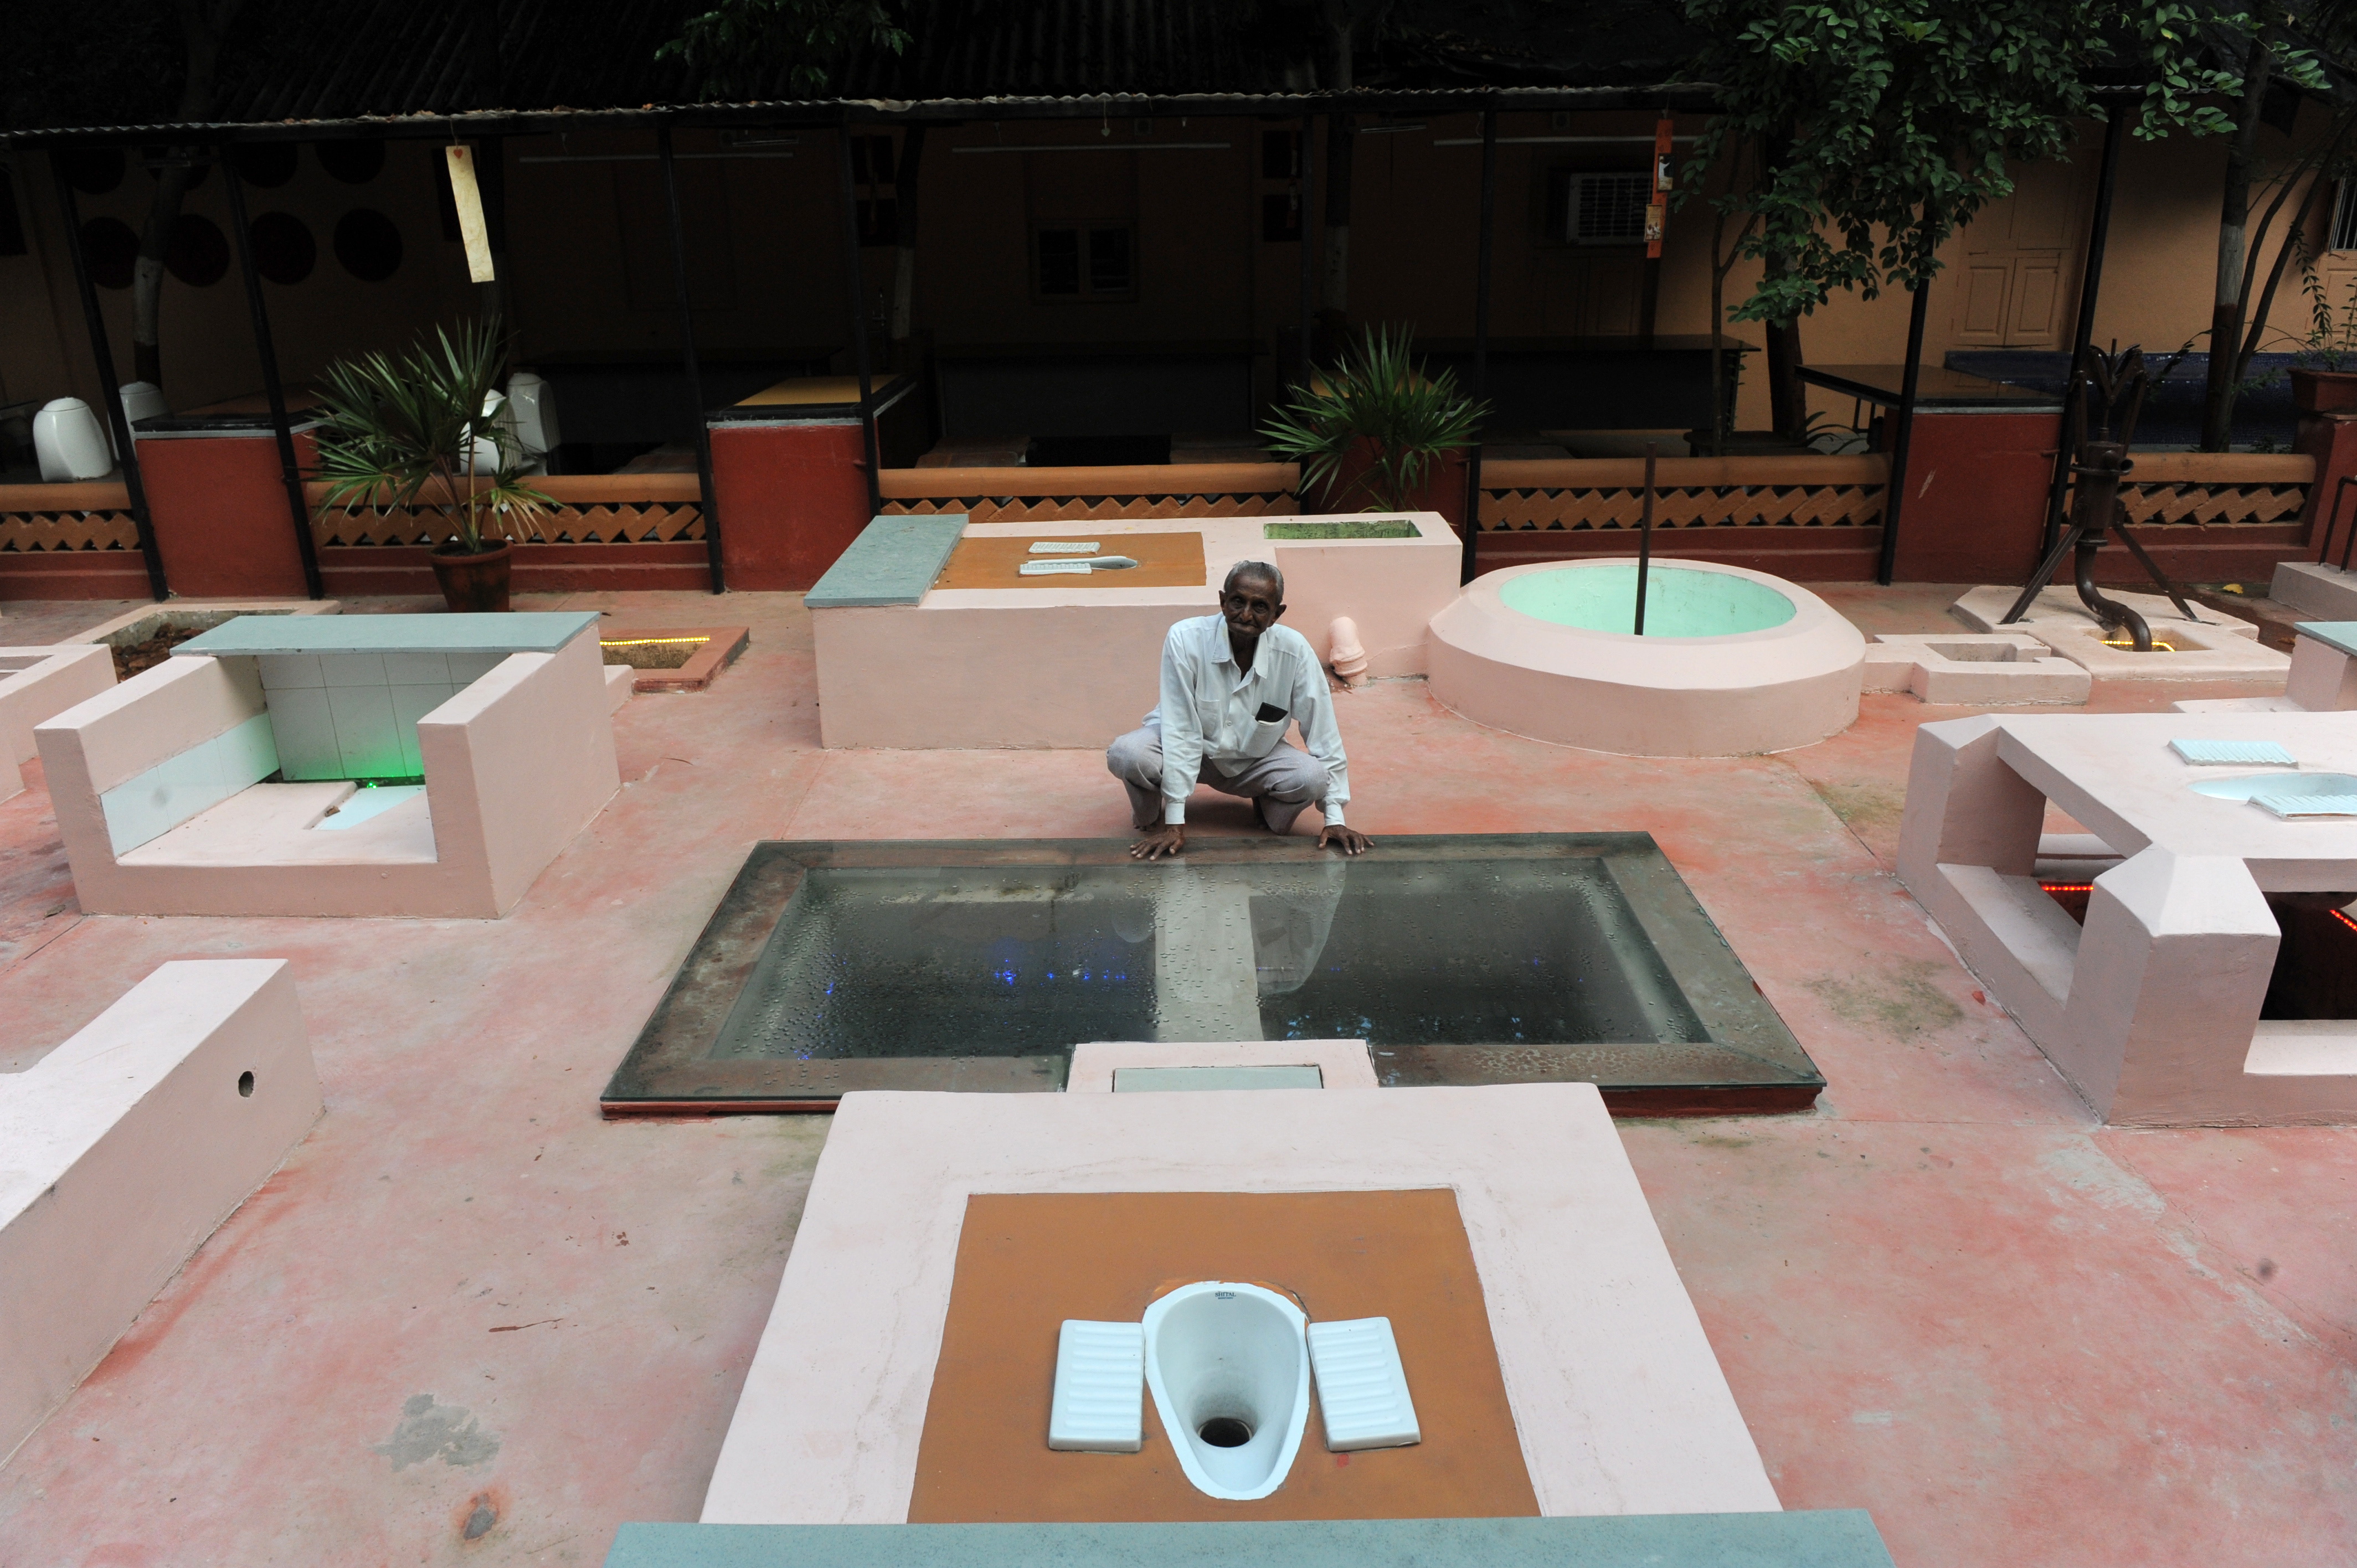 Two pit latrines, designed for villages as per the guidelines of the World Bank, are shown by Jayantibhai Gohil (90) in charge of Safai Vidyalaya in the campus of Gandhi Ashram in Ahmedabad on October 3, 2013.